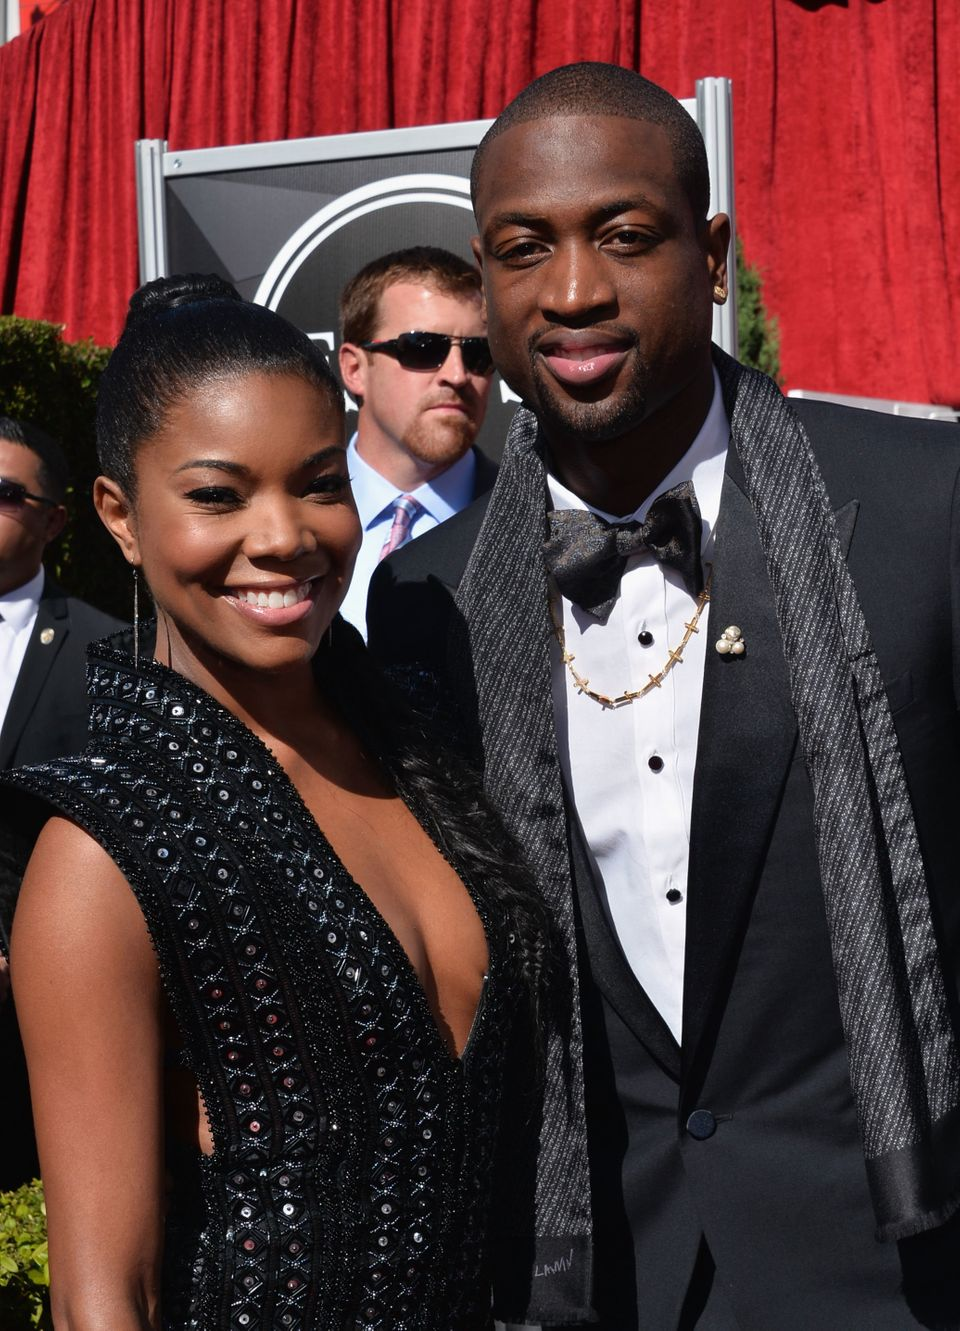 LOS ANGELES, CA - JULY 17:  (L-R) Actress Gabrielle Union and NBA player Dwayne Wade attend The 2013 ESPY Awards at Nokia The